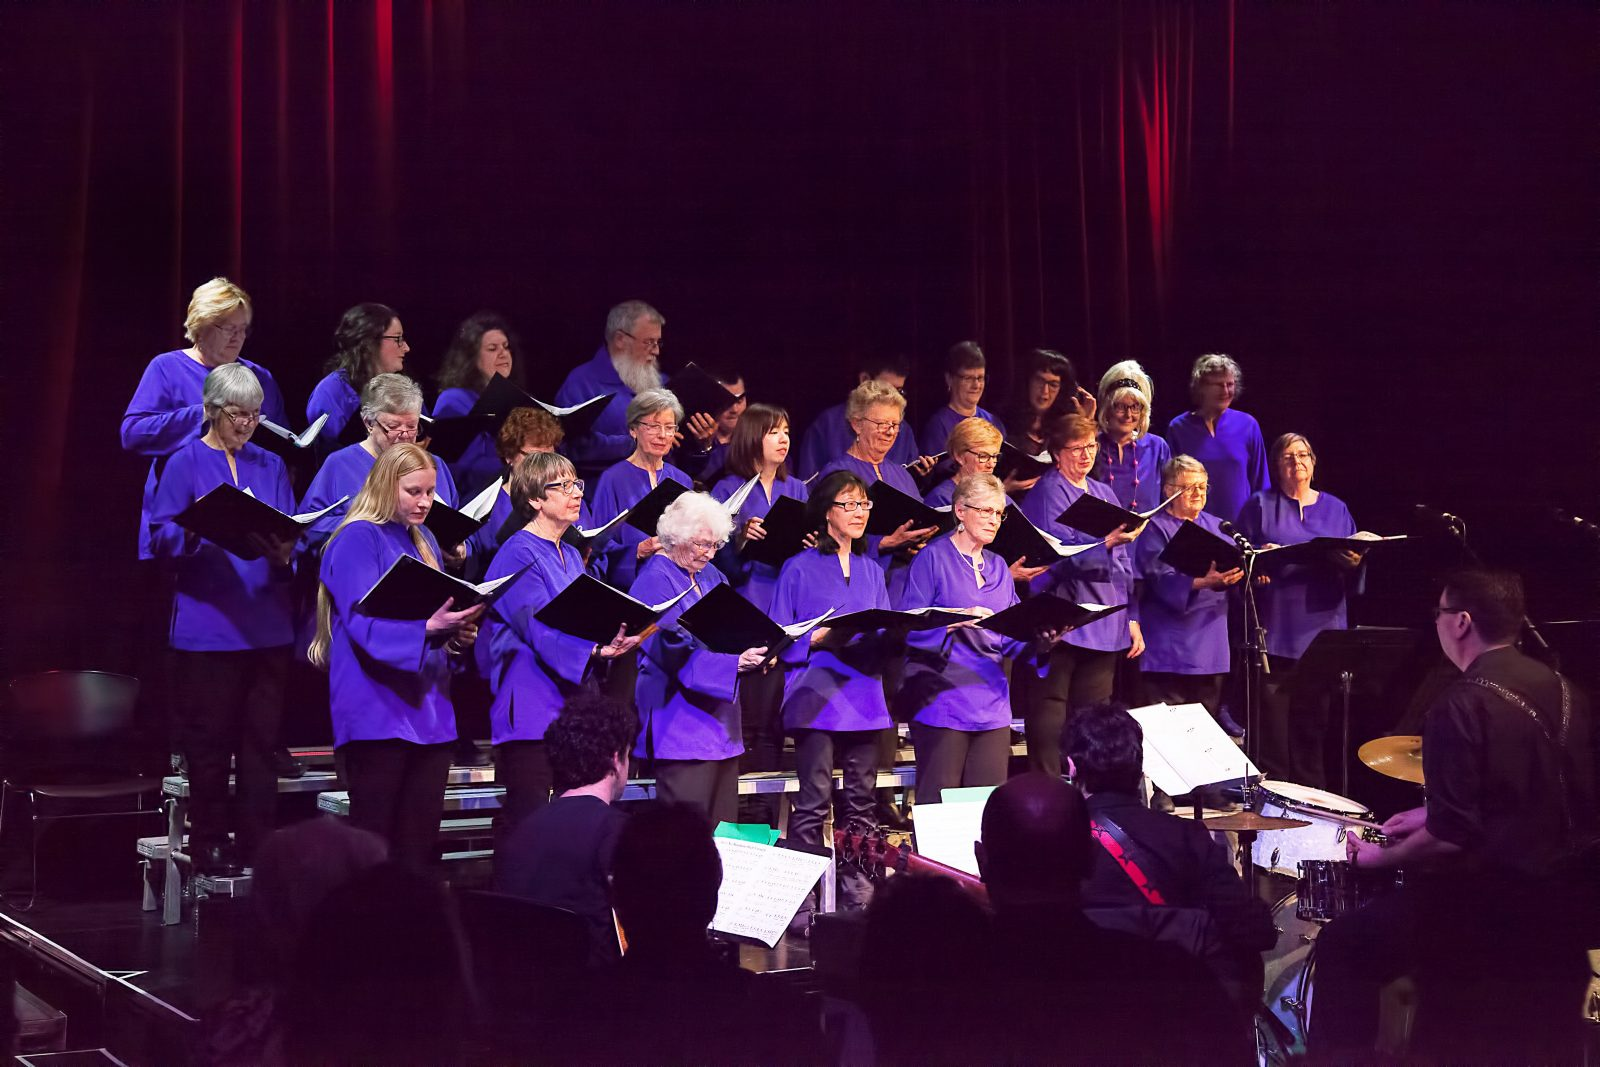 Choir singing at Moonah Arts Centre